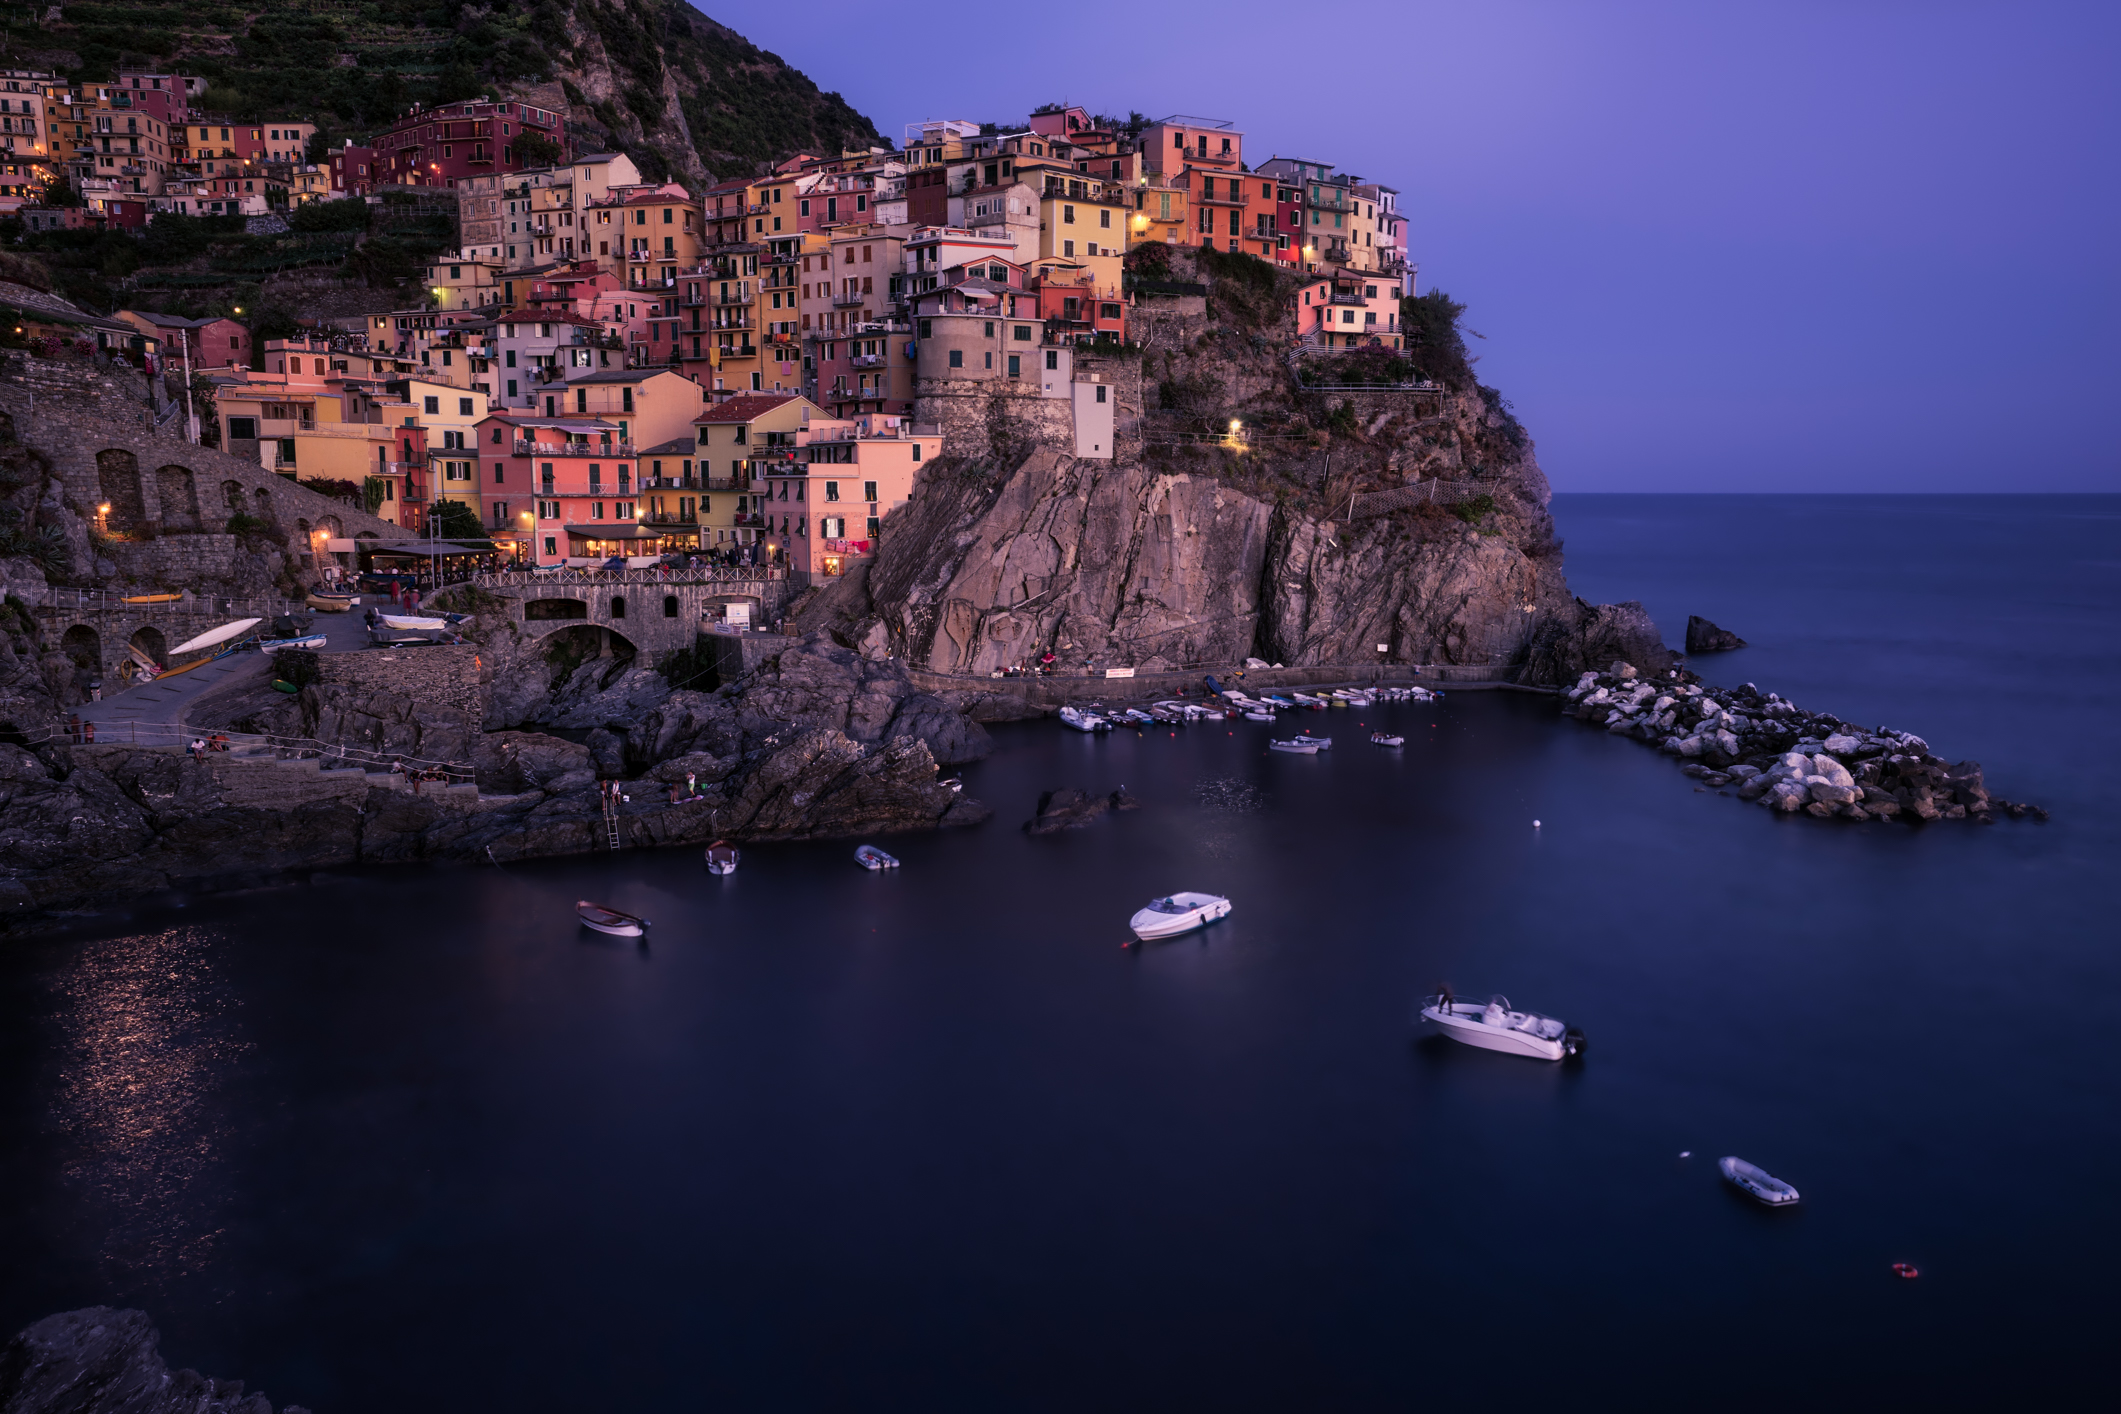 A stunning twilight over Manarola